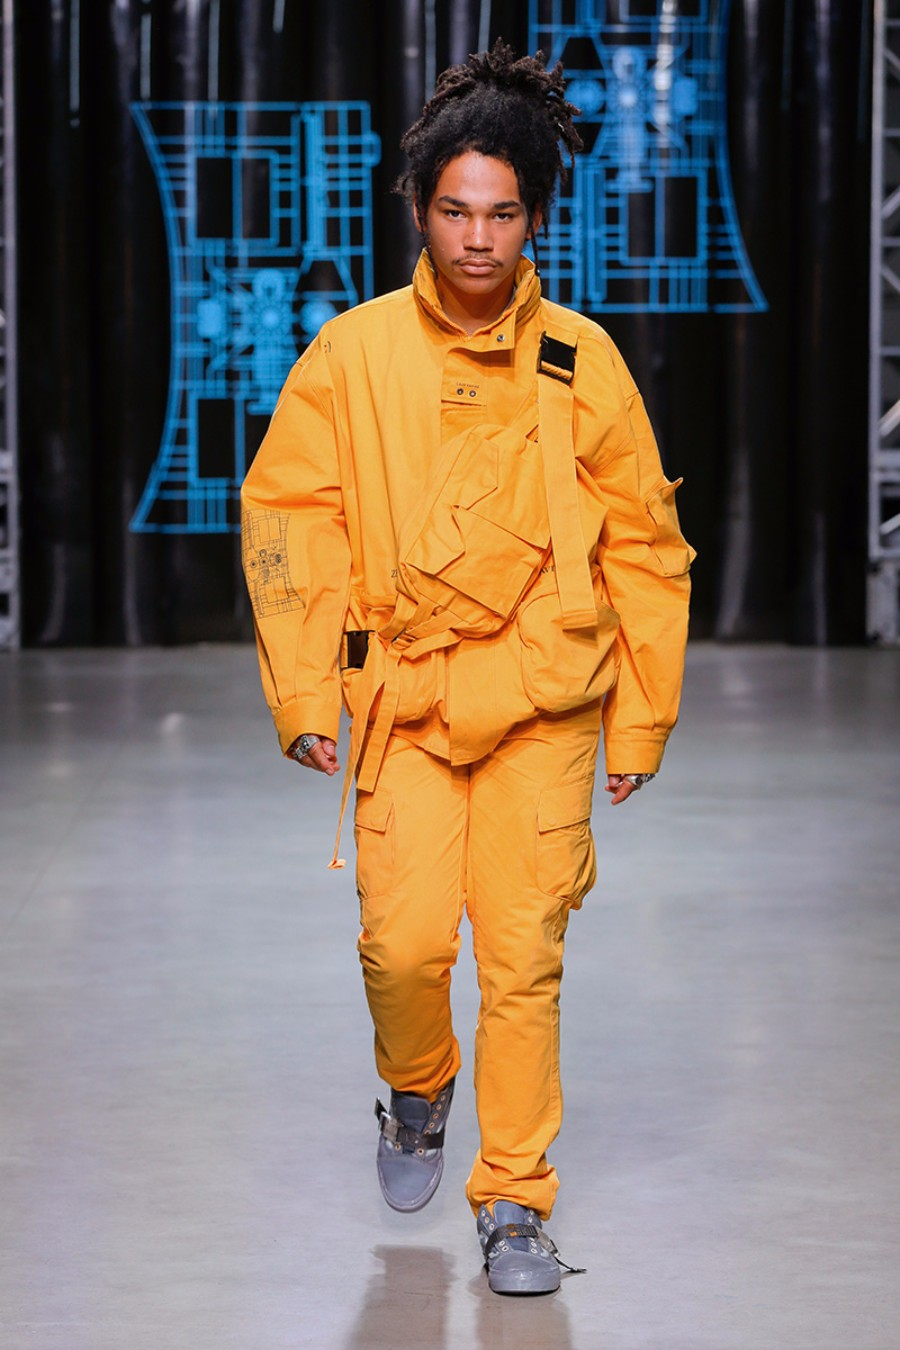 NYFWM: C2H4 Spring/Summer 2018 Collection